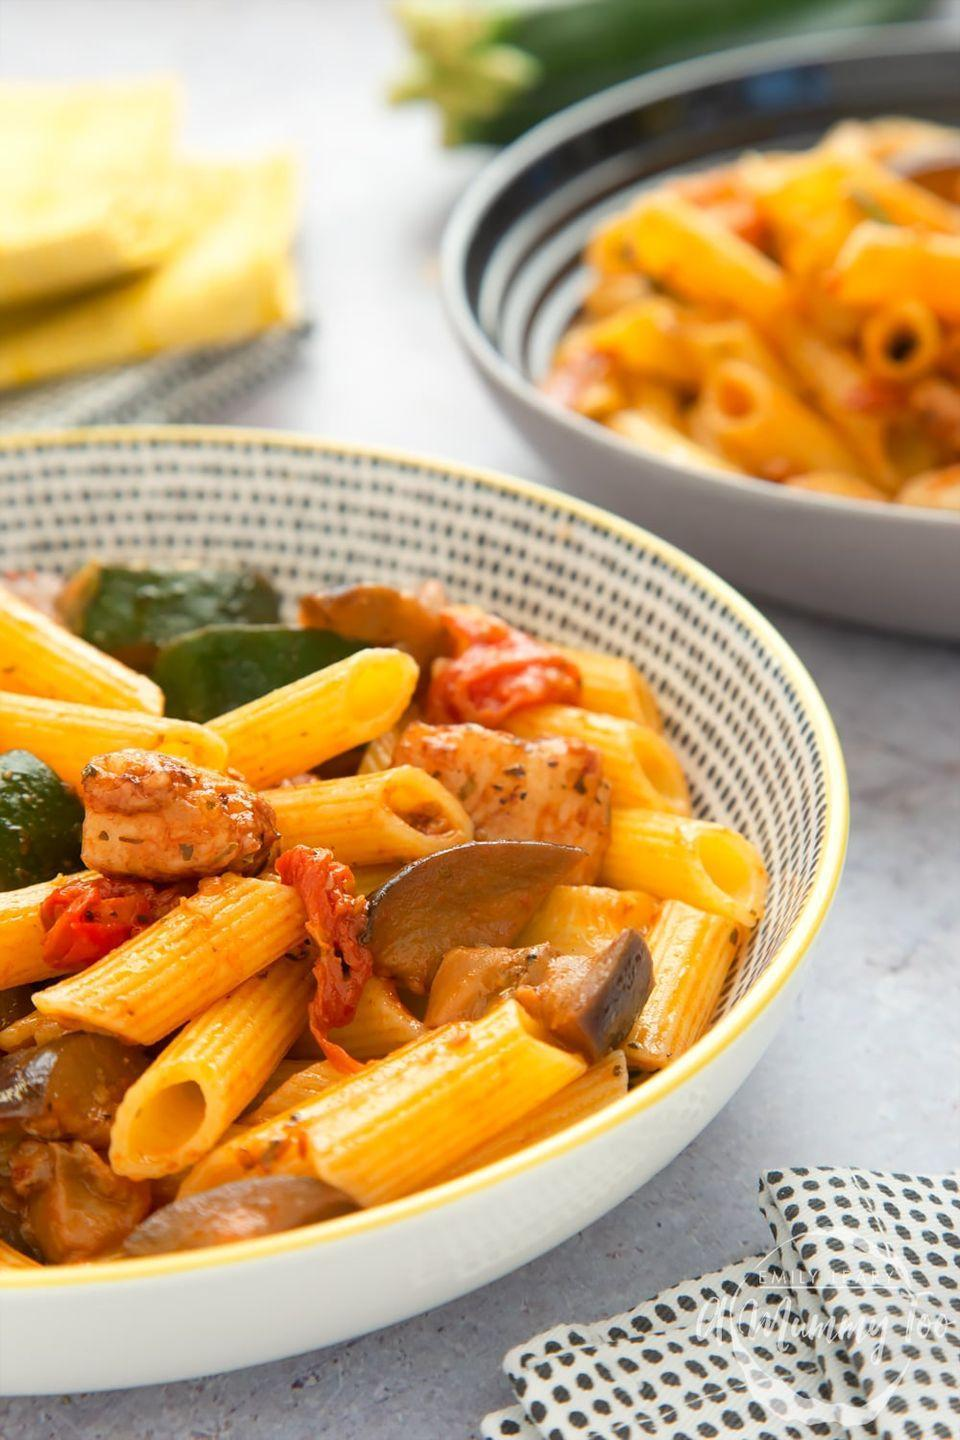 """<p>Halloumi, courgette, aubergine and fresh cherry tomatoes make this the best kind of dinner to come home to. </p><p>Get the <a href=""""https://www.amummytoo.co.uk/cypriot-inspired-intensely-flavourful-halloumi-pasta/"""" rel=""""nofollow noopener"""" target=""""_blank"""" data-ylk=""""slk:Cypriot-Inspired Halloumi Pasta"""" class=""""link rapid-noclick-resp"""">Cypriot-Inspired Halloumi Pasta</a> recipe.</p><p>Recipe from <a href=""""https://www.amummytoo.co.uk/"""" rel=""""nofollow noopener"""" target=""""_blank"""" data-ylk=""""slk:A Mummy Too"""" class=""""link rapid-noclick-resp"""">A Mummy Too</a>.</p>"""